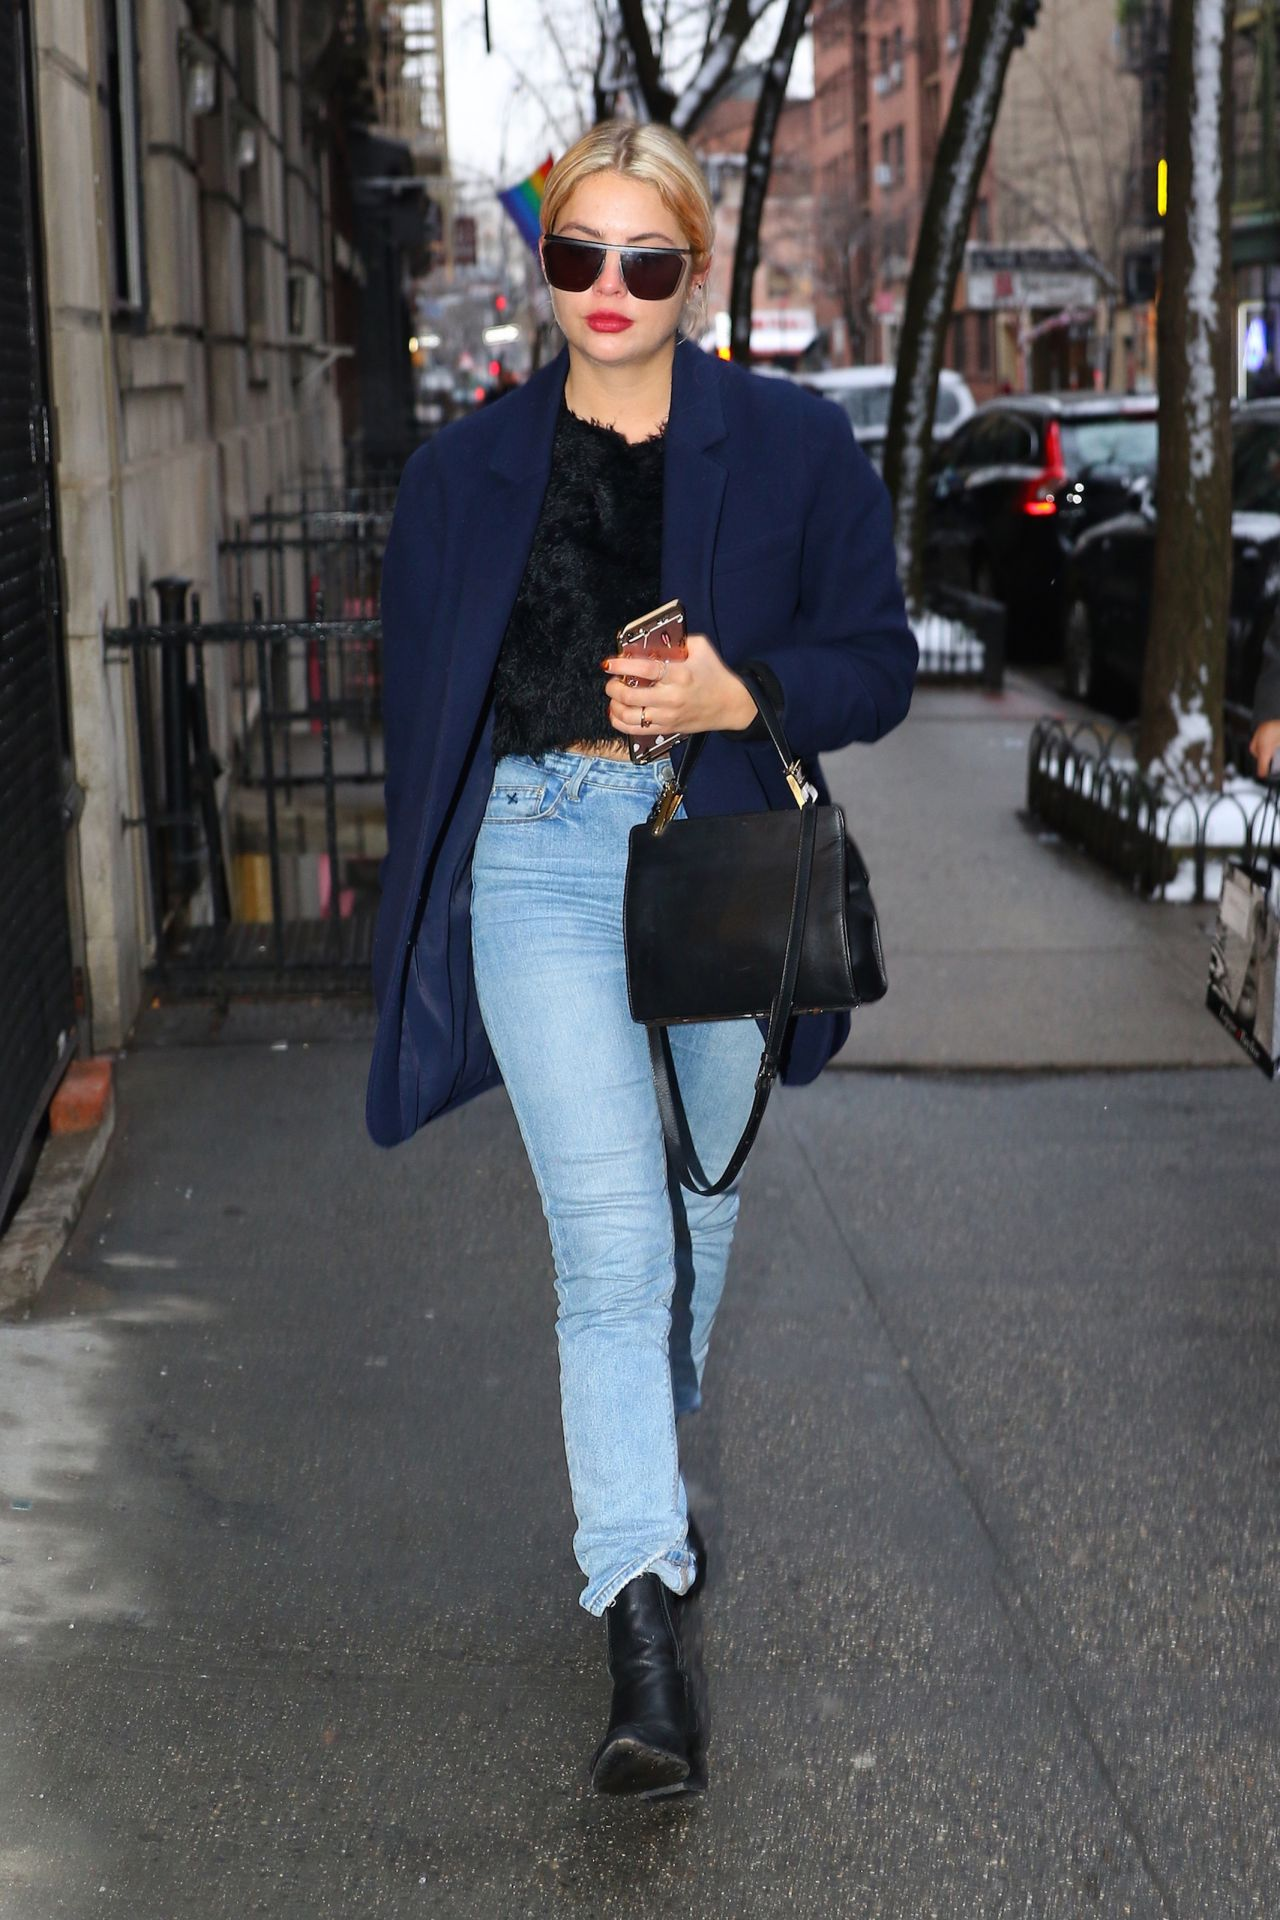 Discussion on this topic: Lea michele arrives at a hair salon in west hollywood, lindsay-lohan-is-apparently-going-jewish-for/